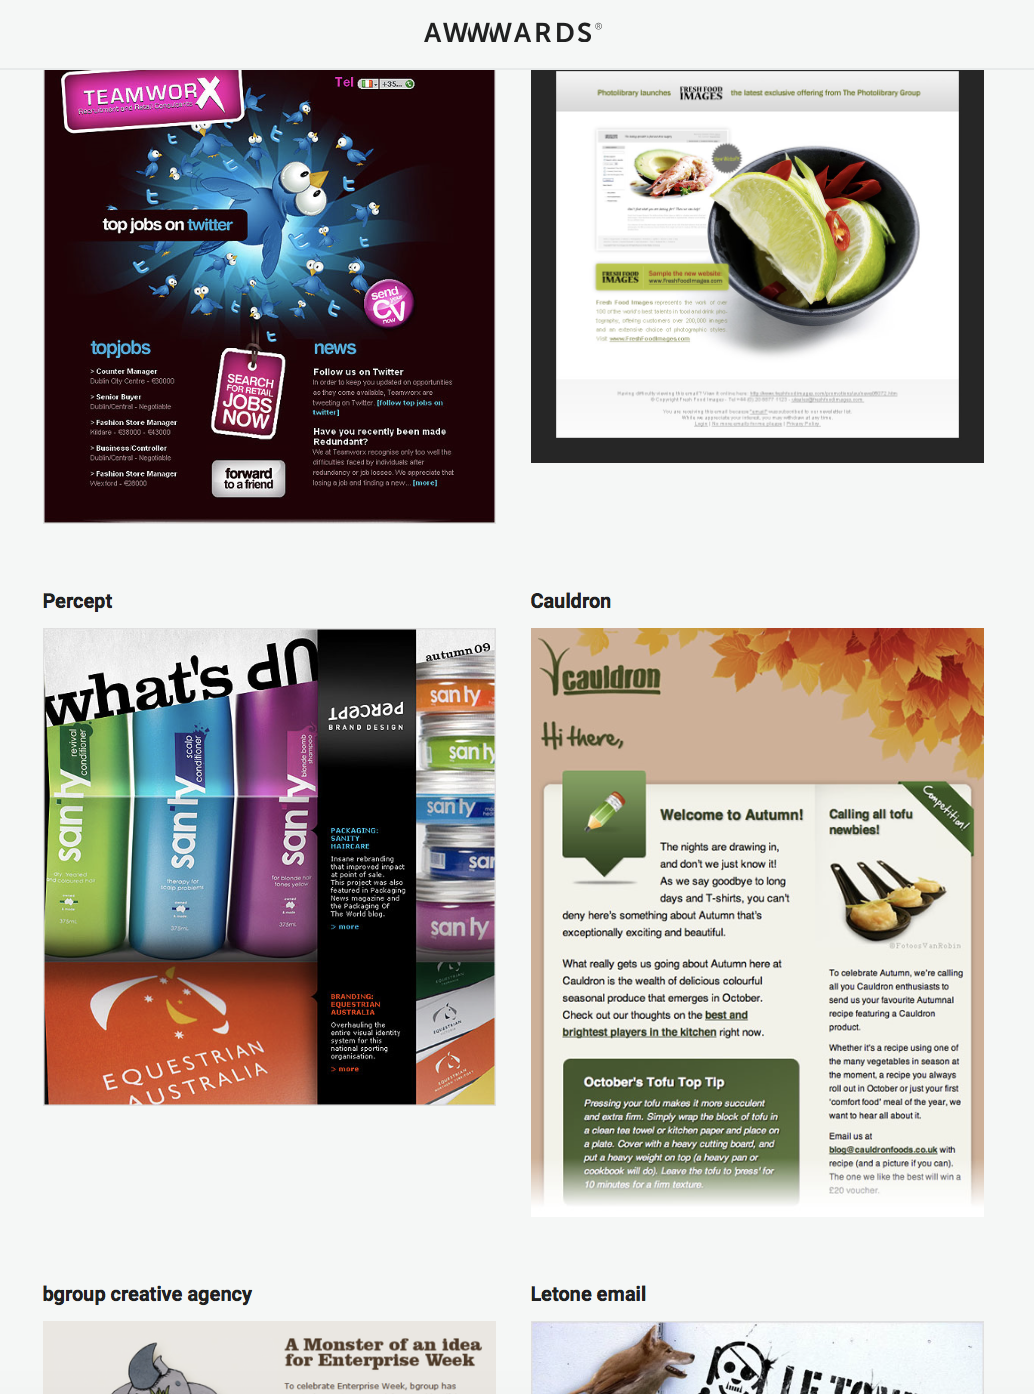 Newsletter design awwords result